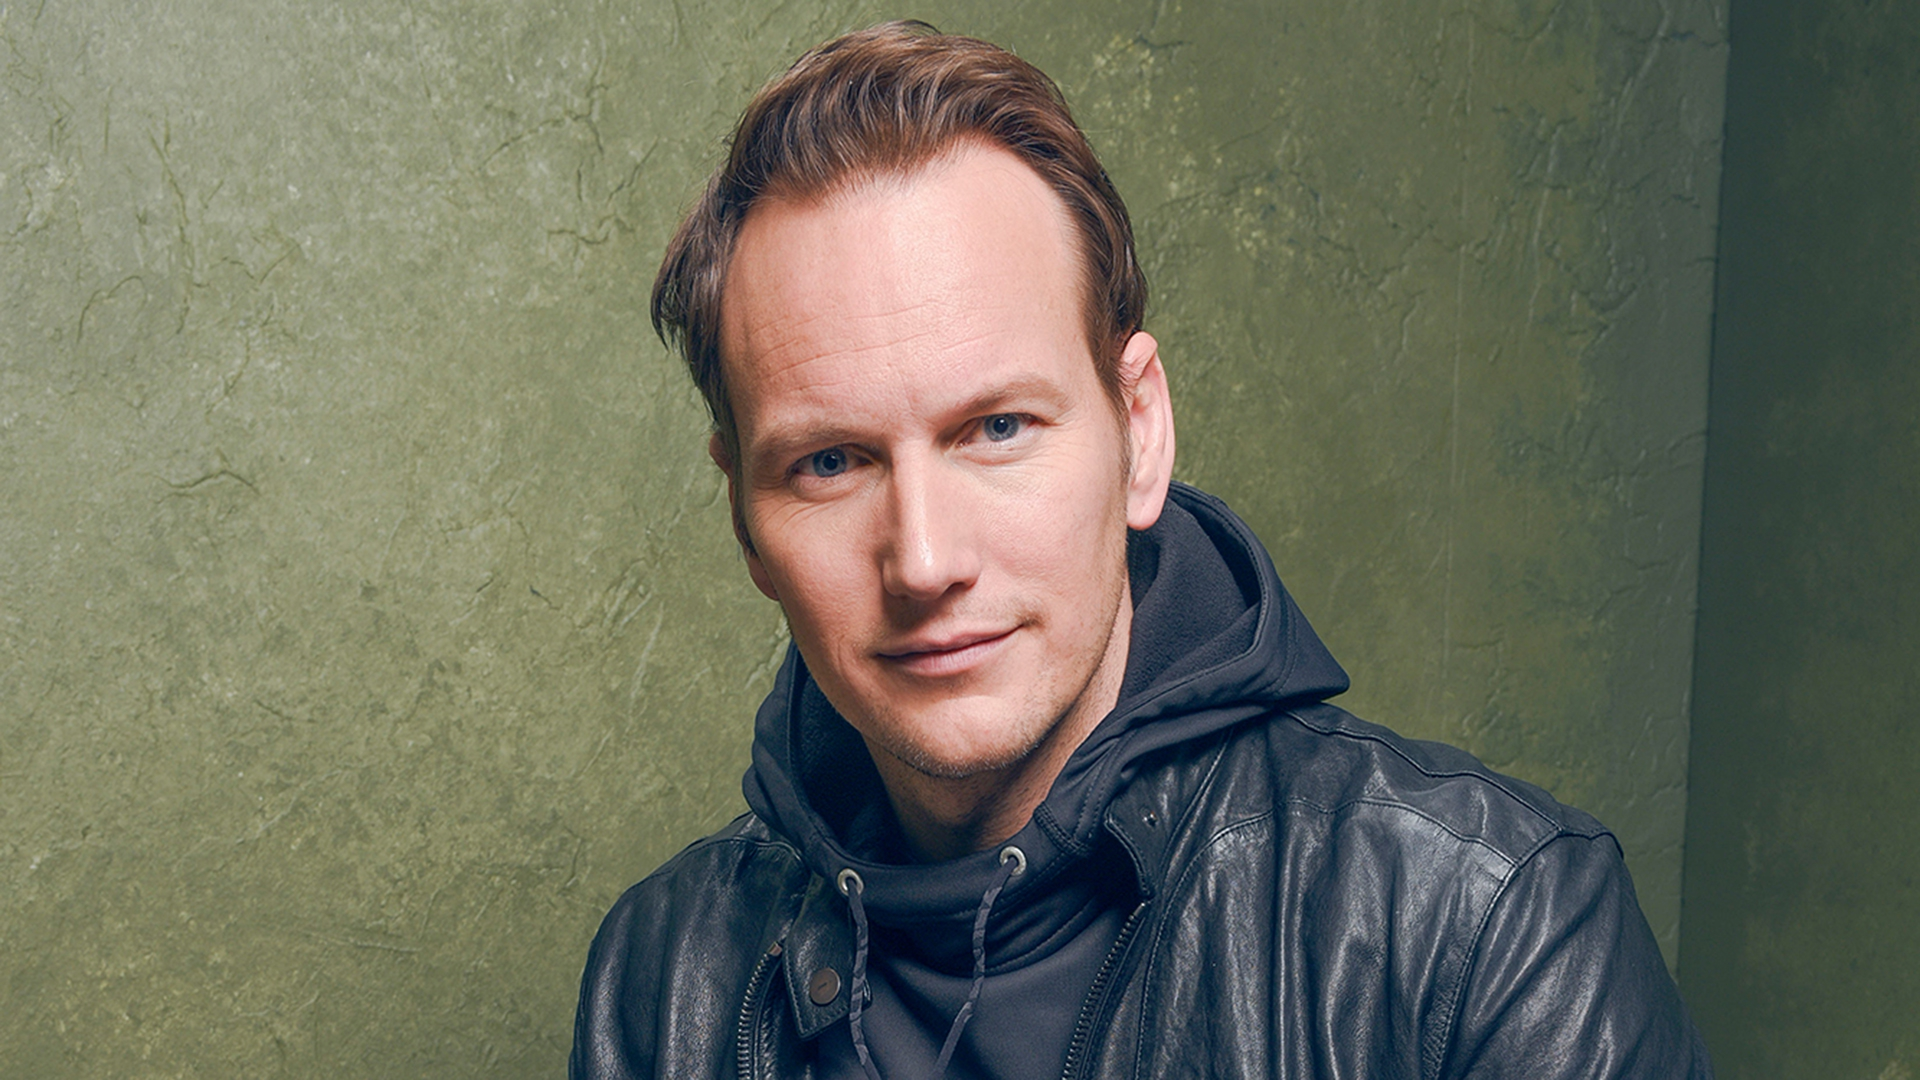 Patrick Wilson Wallpapers Hd Pictures Images High Quality